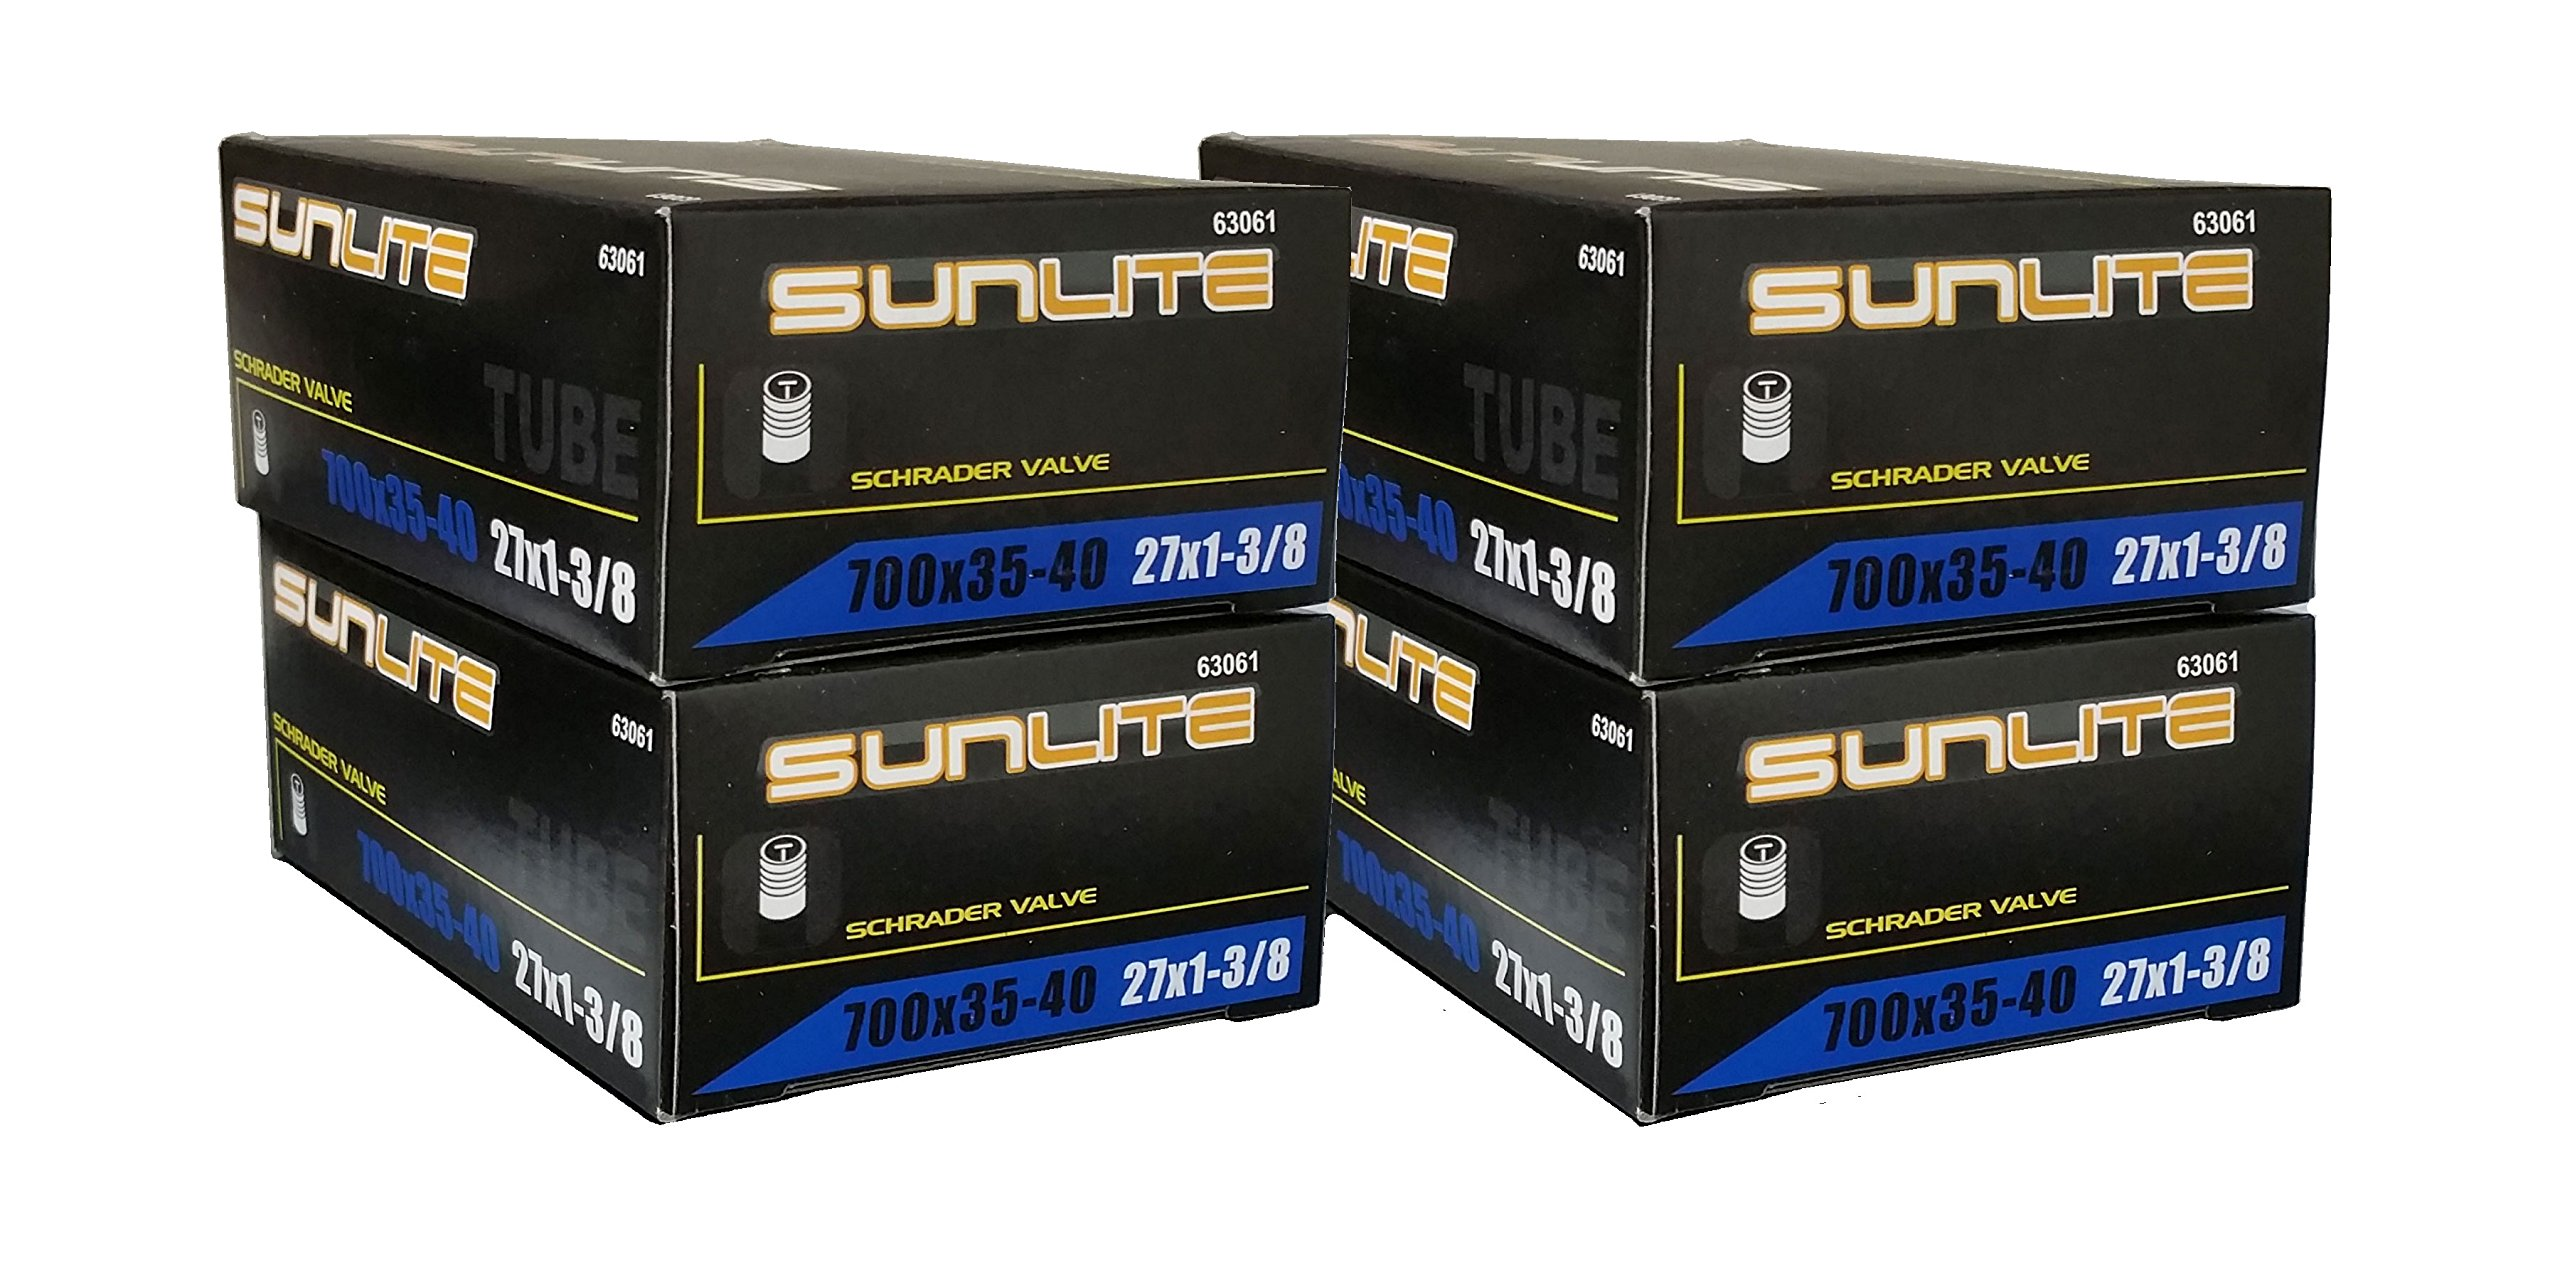 GET ONE FREE 4 PACK DEAL - Tube, 700 x 35-40 (27 x 1-3/8) SCHRADER Valve 32mm, Sunlite by Street Fit 360